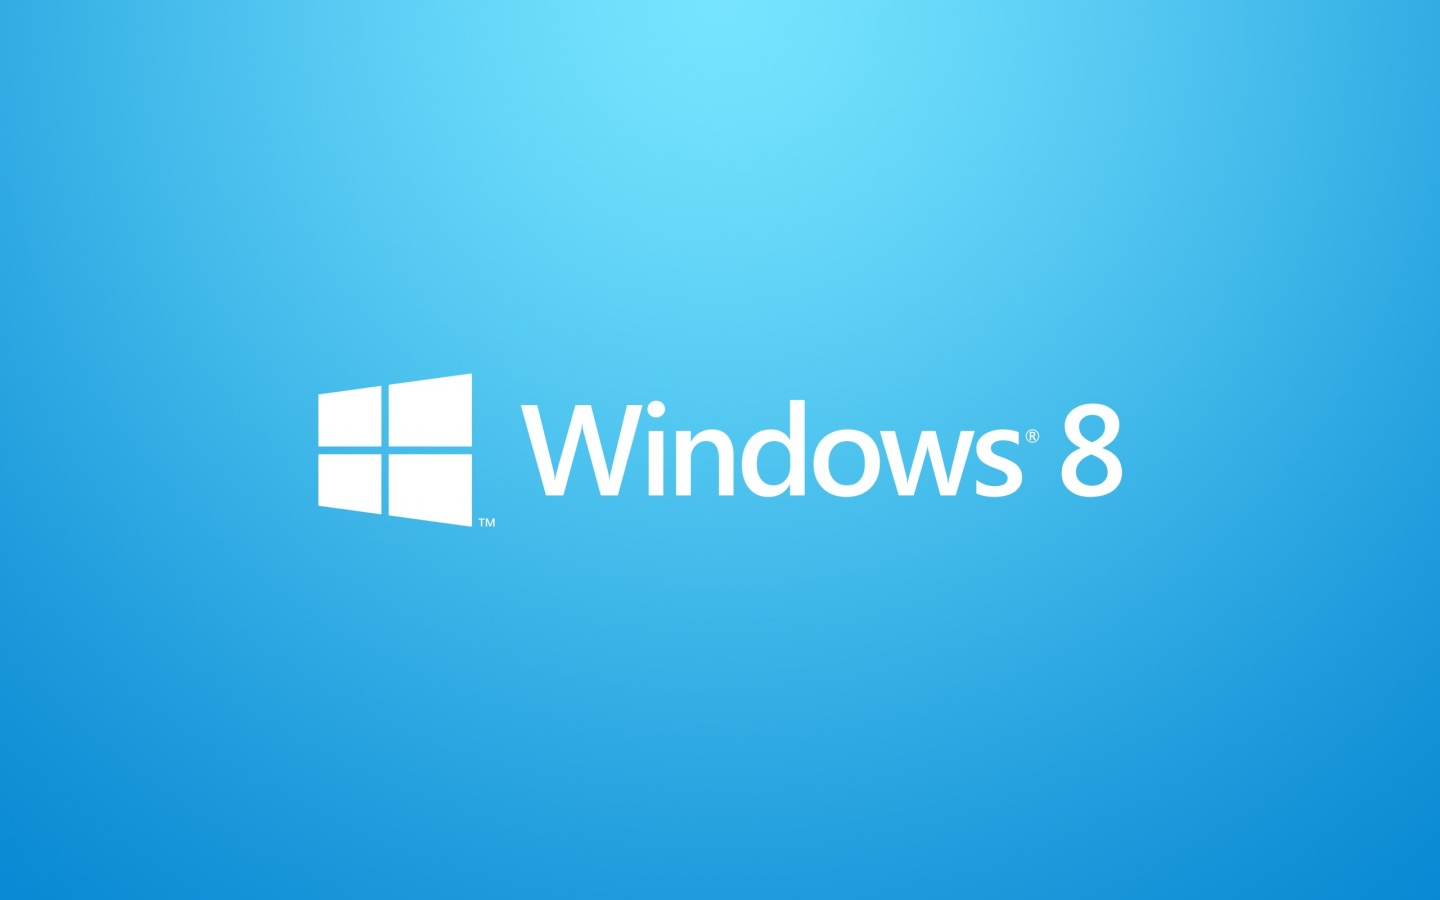 Papel De Parede Windows 8 Wallpaper Para Download No